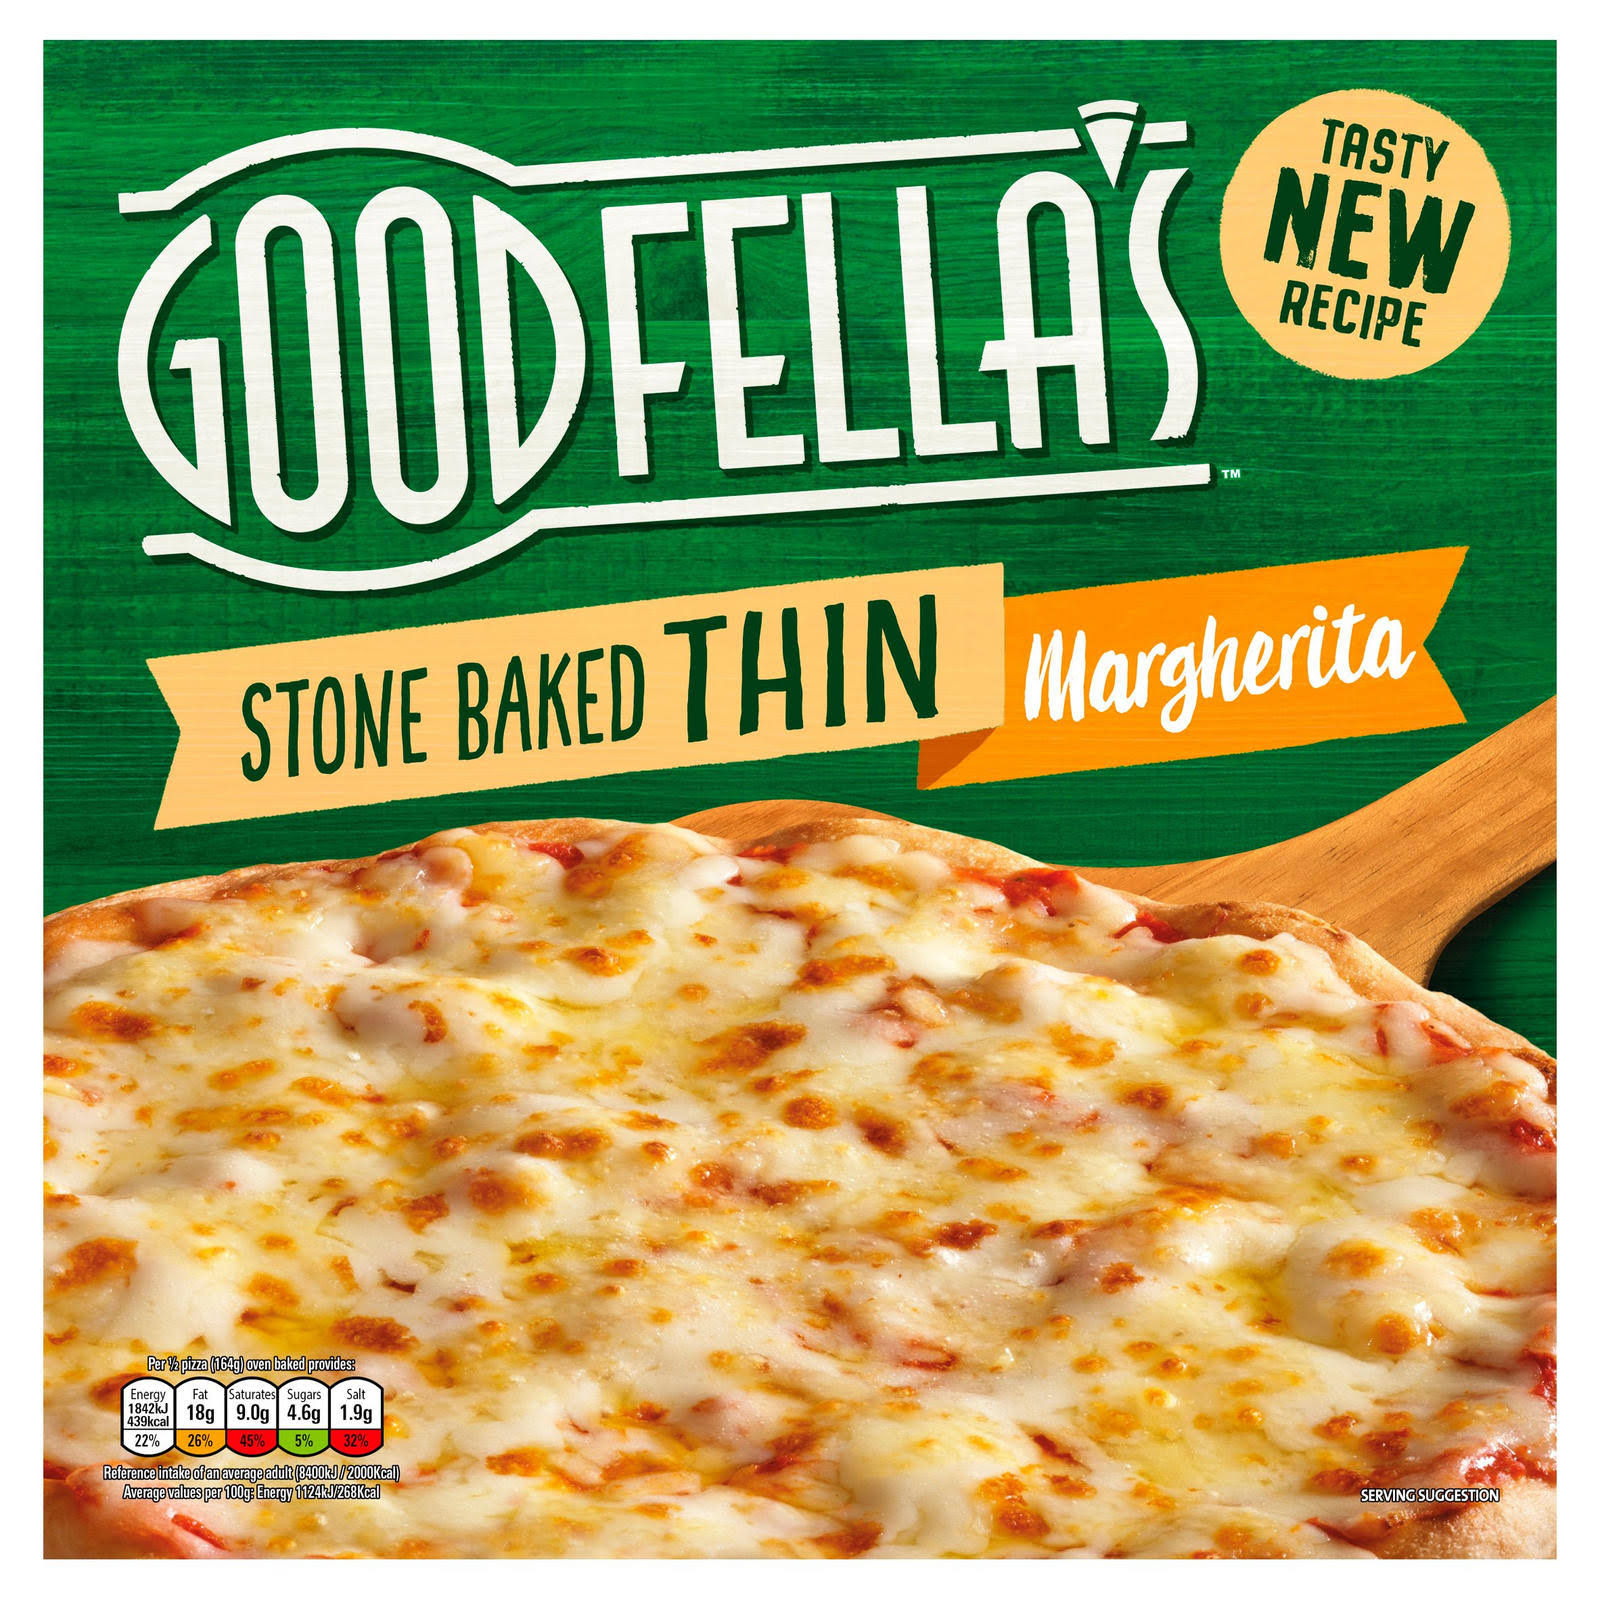 Goodfella's Stonebaked Thin Pizza - Margherita, 345g